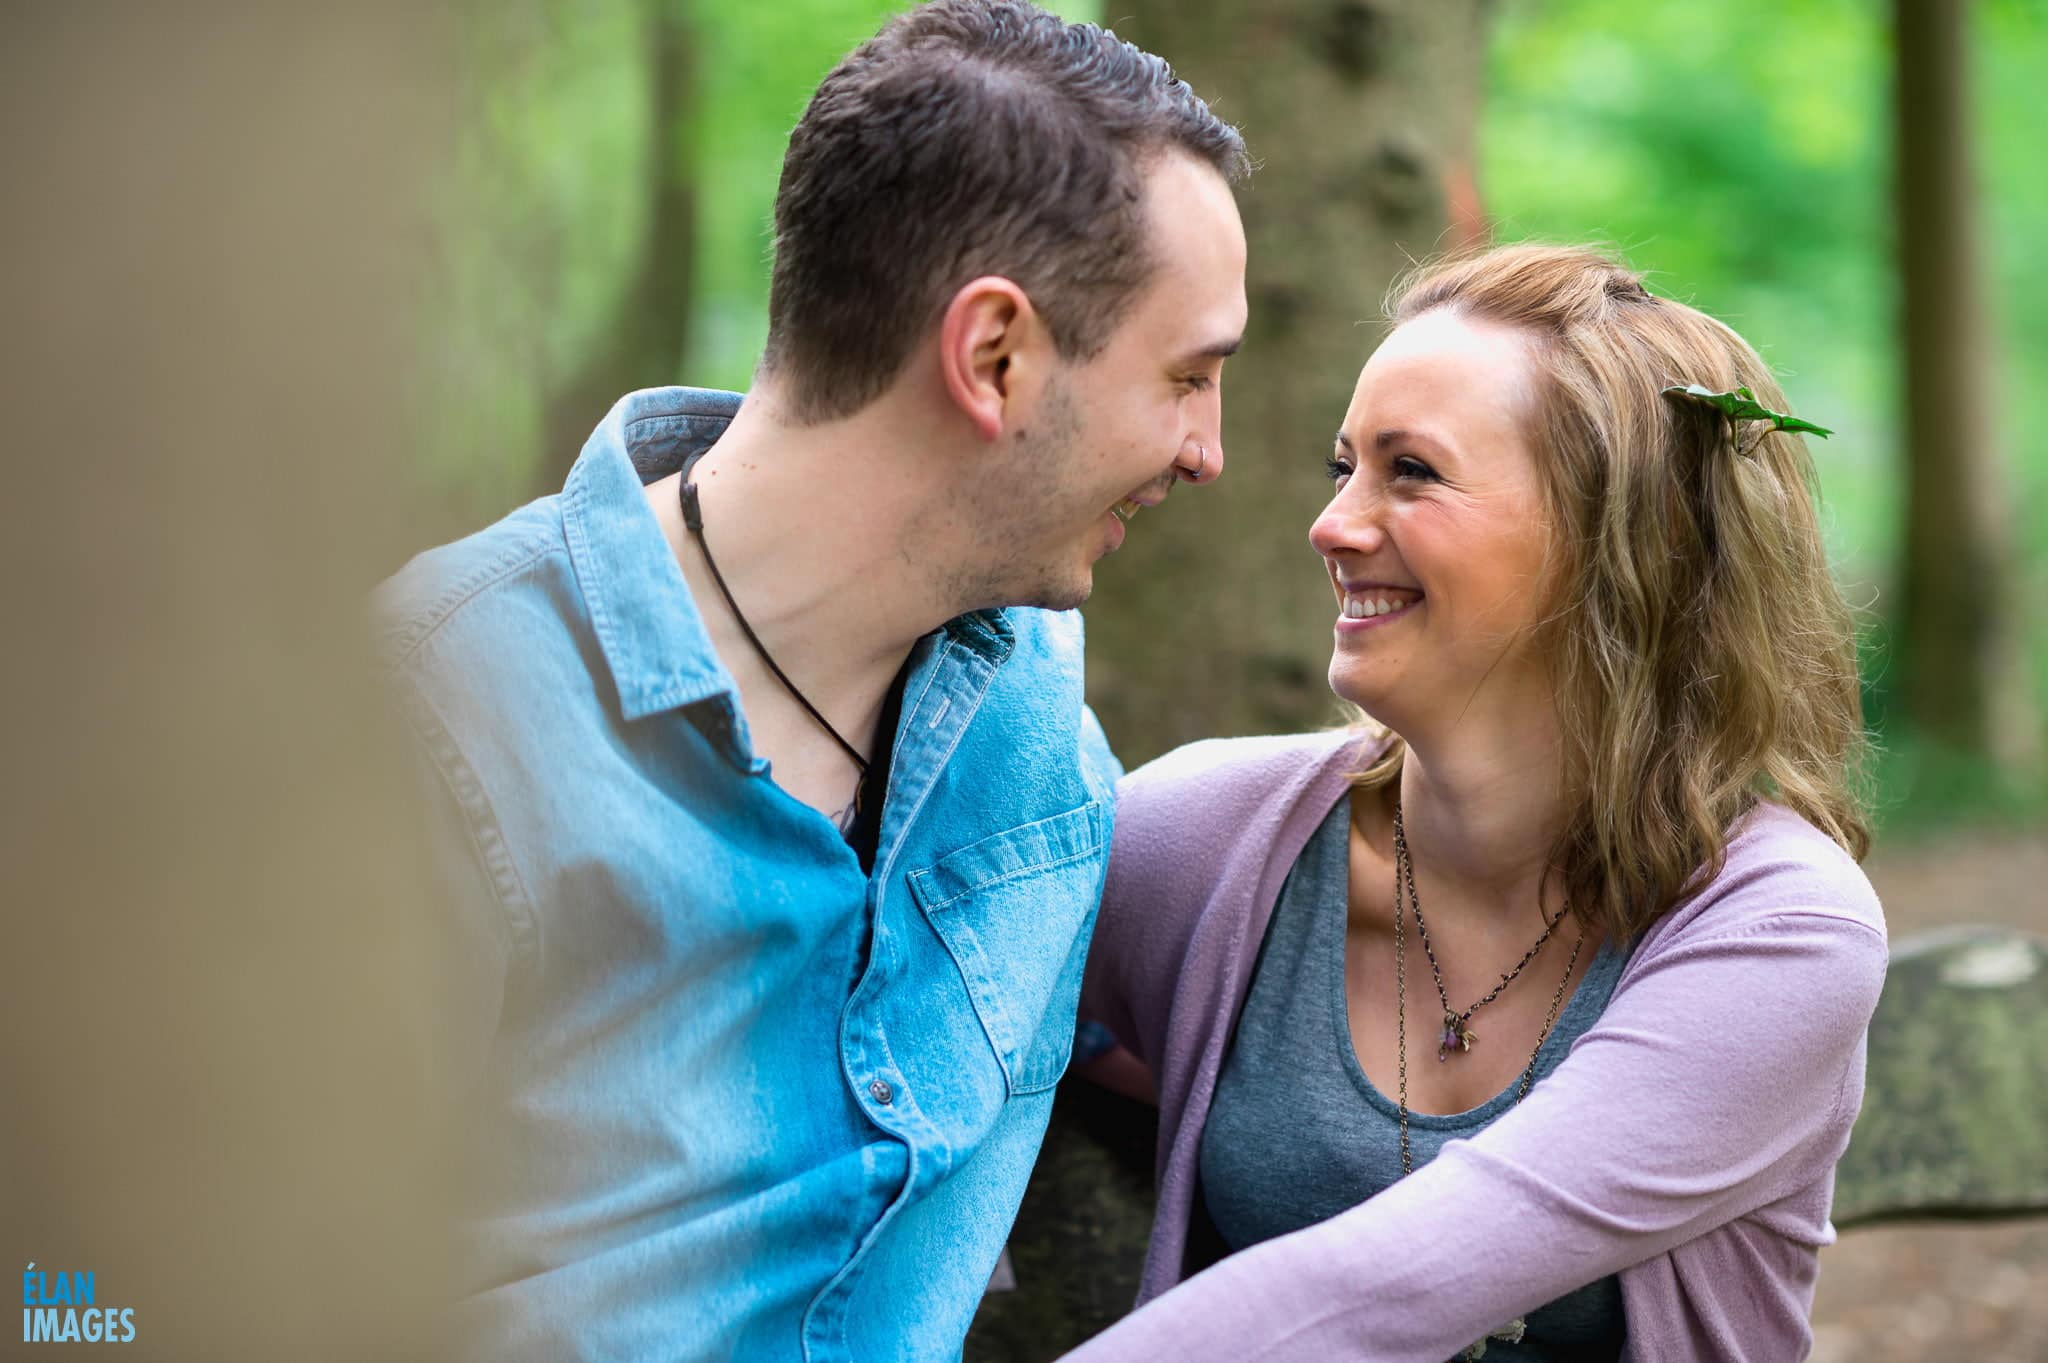 Engagement Photo Shoot in the Bluebell Woods near Bristol 43